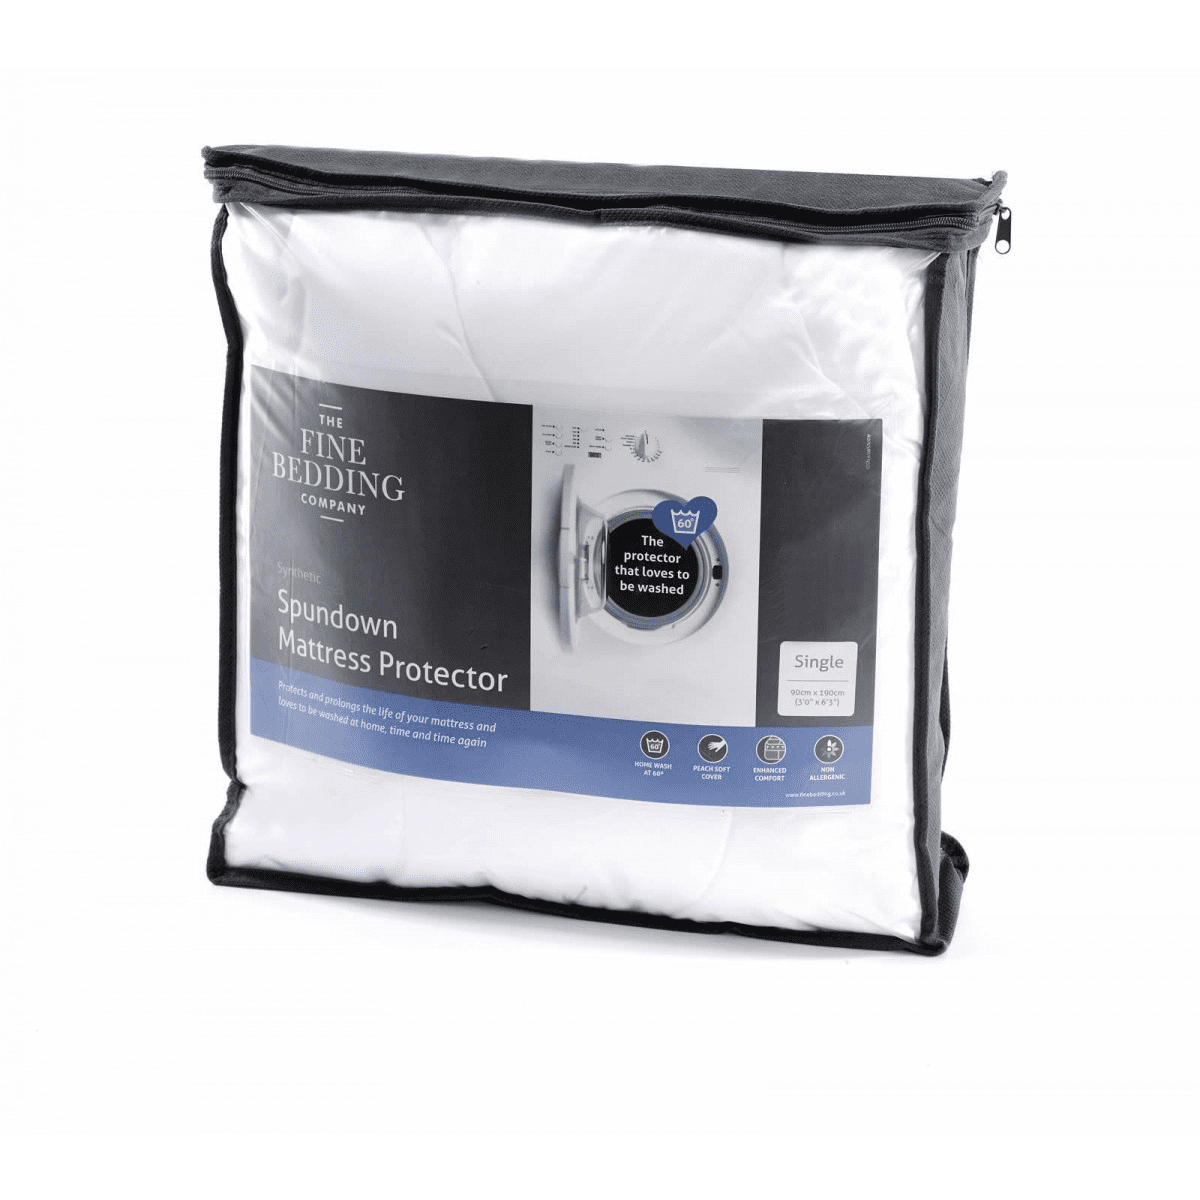 Fine Bedding Spundown Mattress Protector - Single.